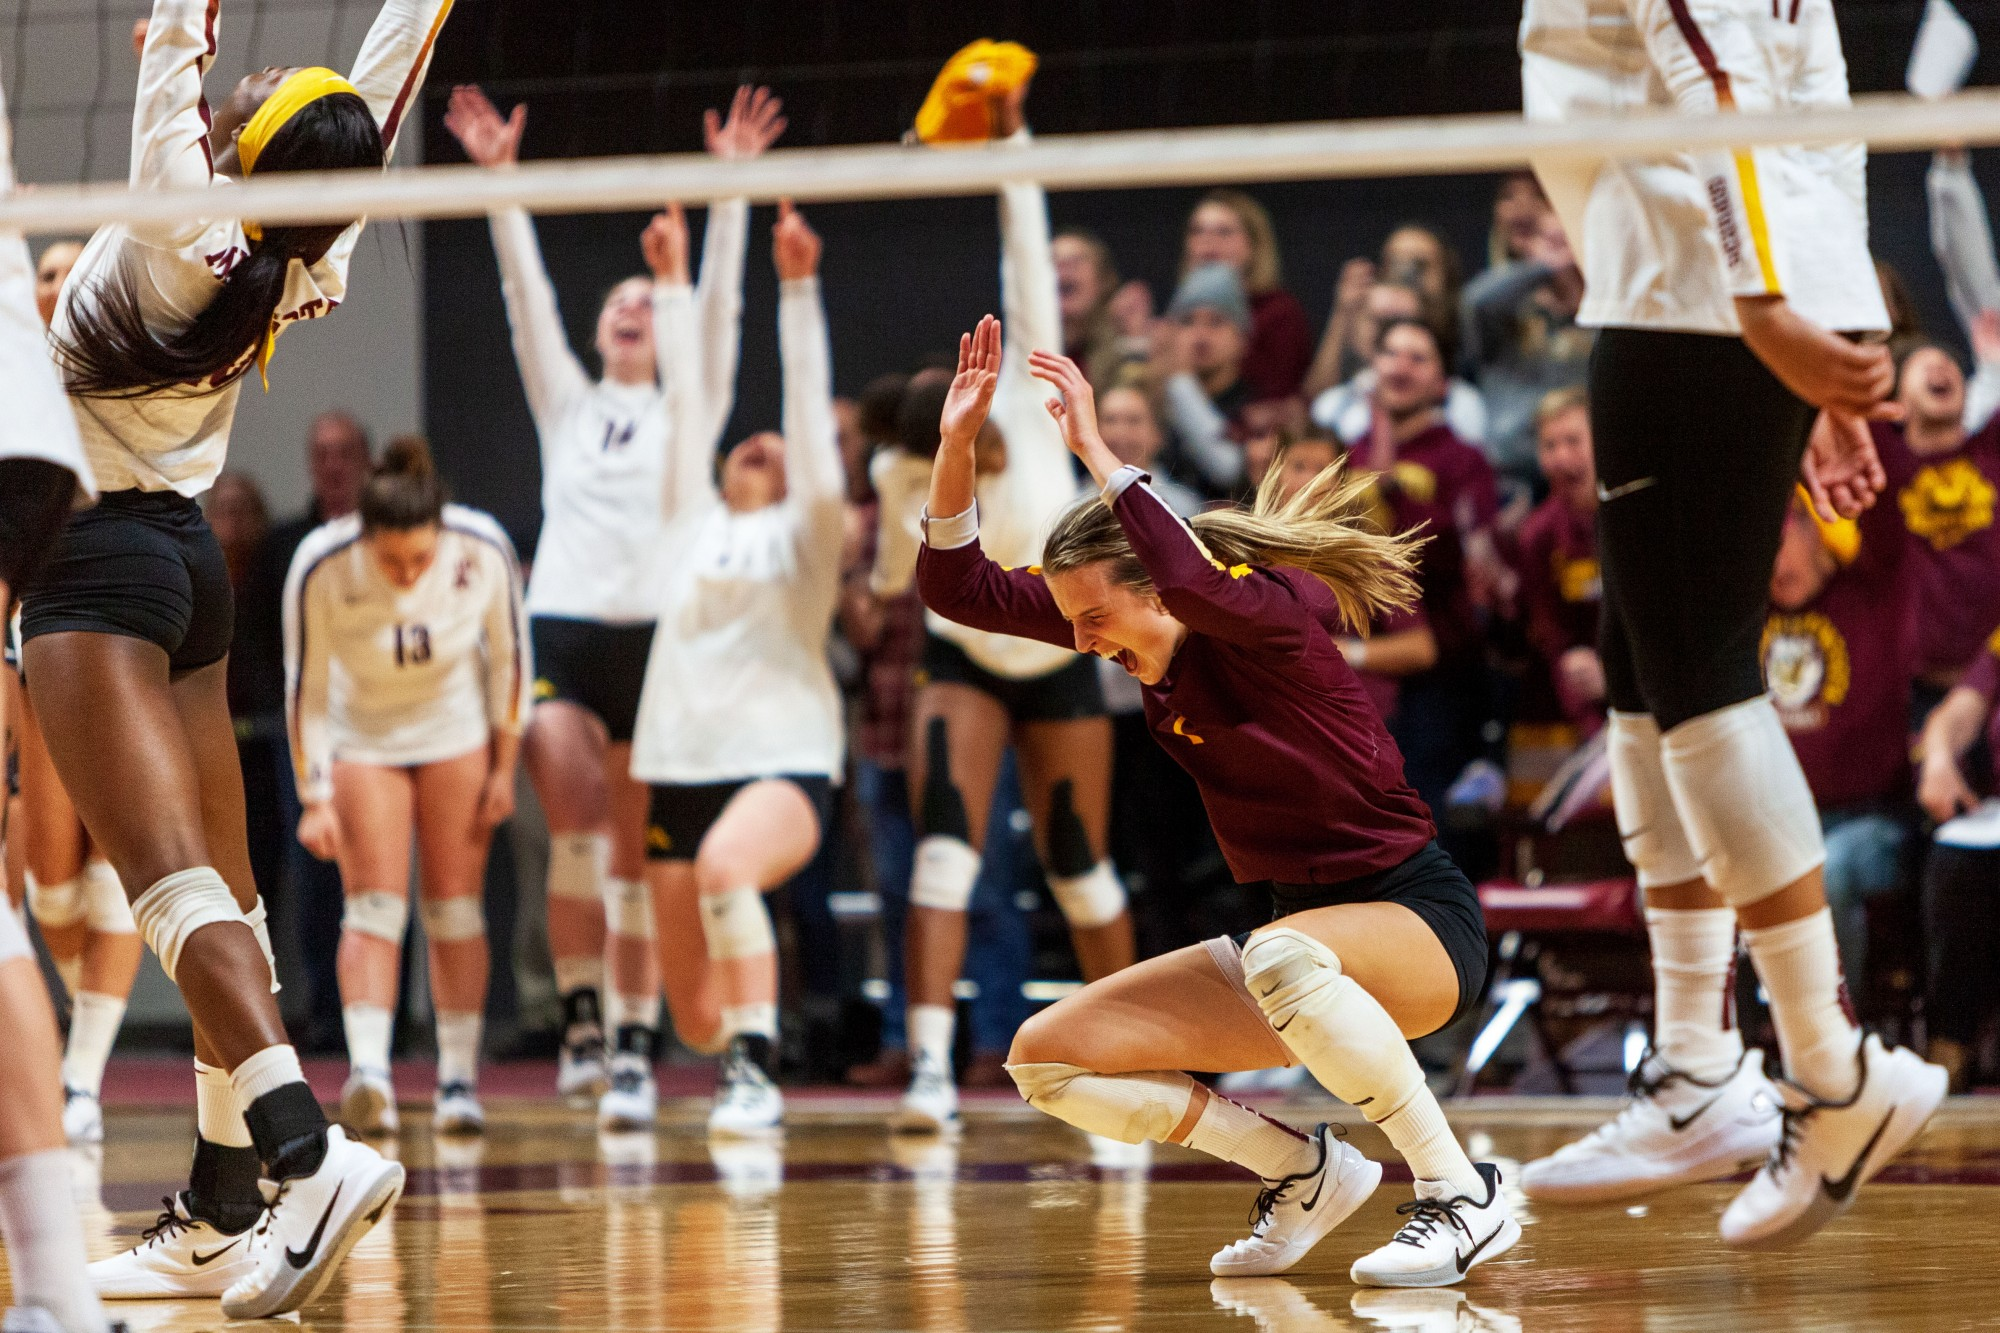 Libero CC McGraw celebrates a point at the Maturi Pavilion on Thursday, Nov. 14. The Gophers ended the night with a 3-1 loss against the Badgers.